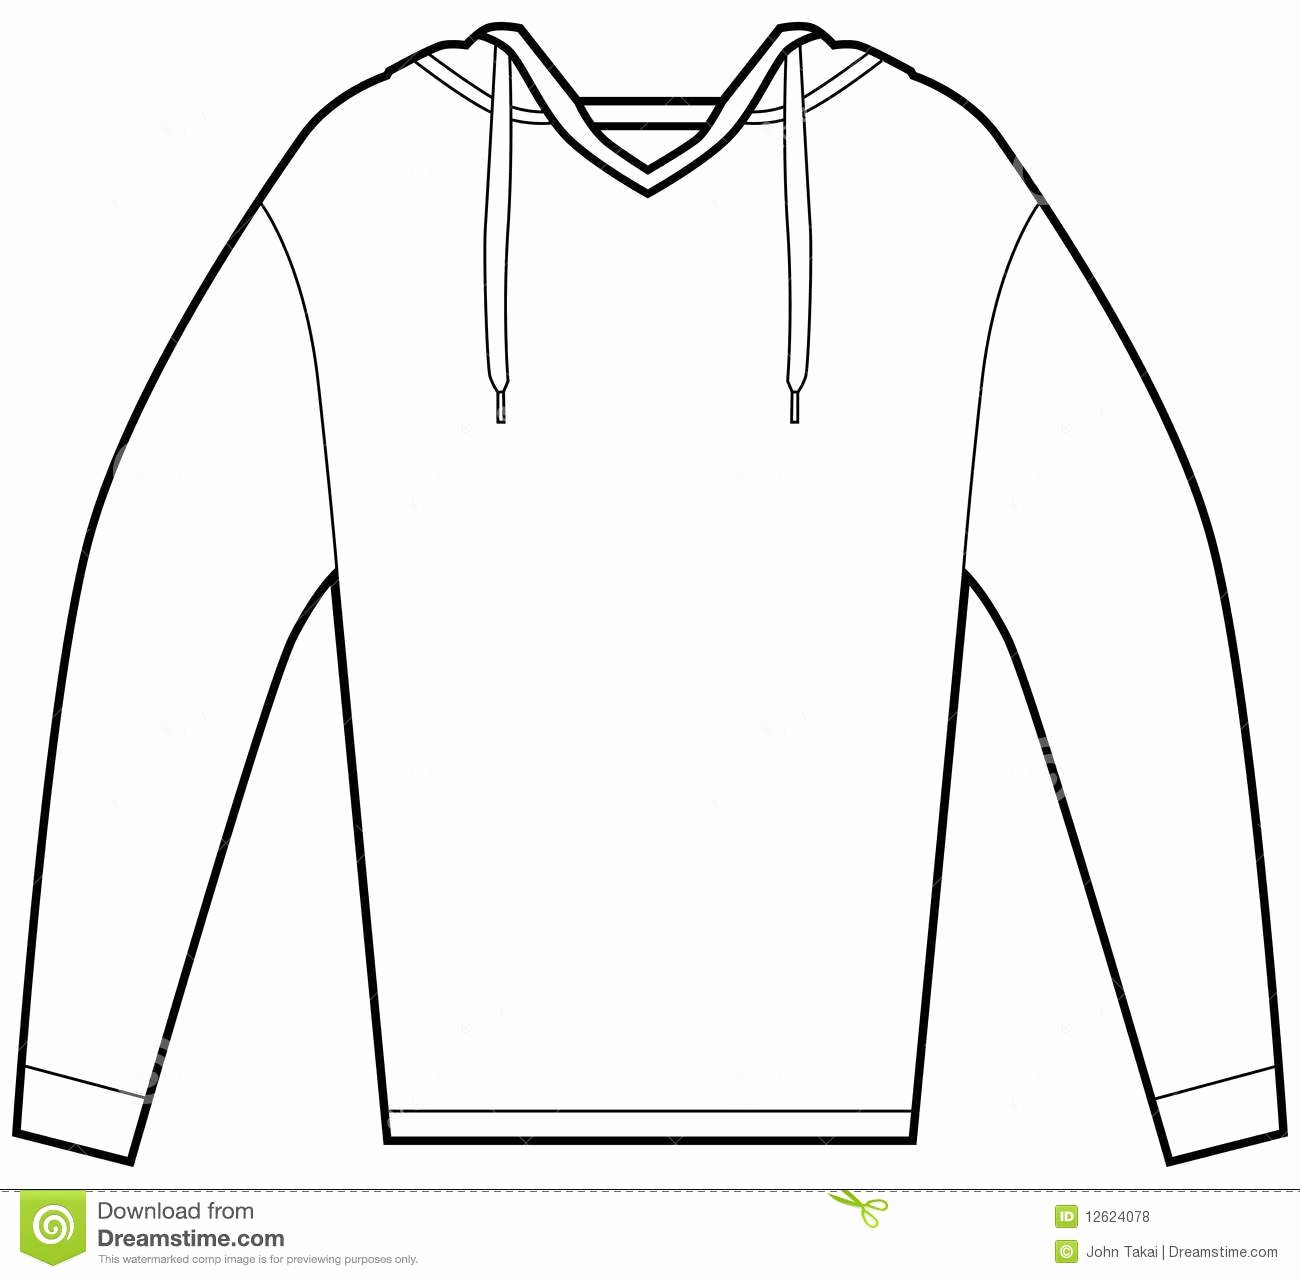 Hooded Sweatshirt Template Awesome 1 4 Sweatshirt Clipart Clipart Suggest